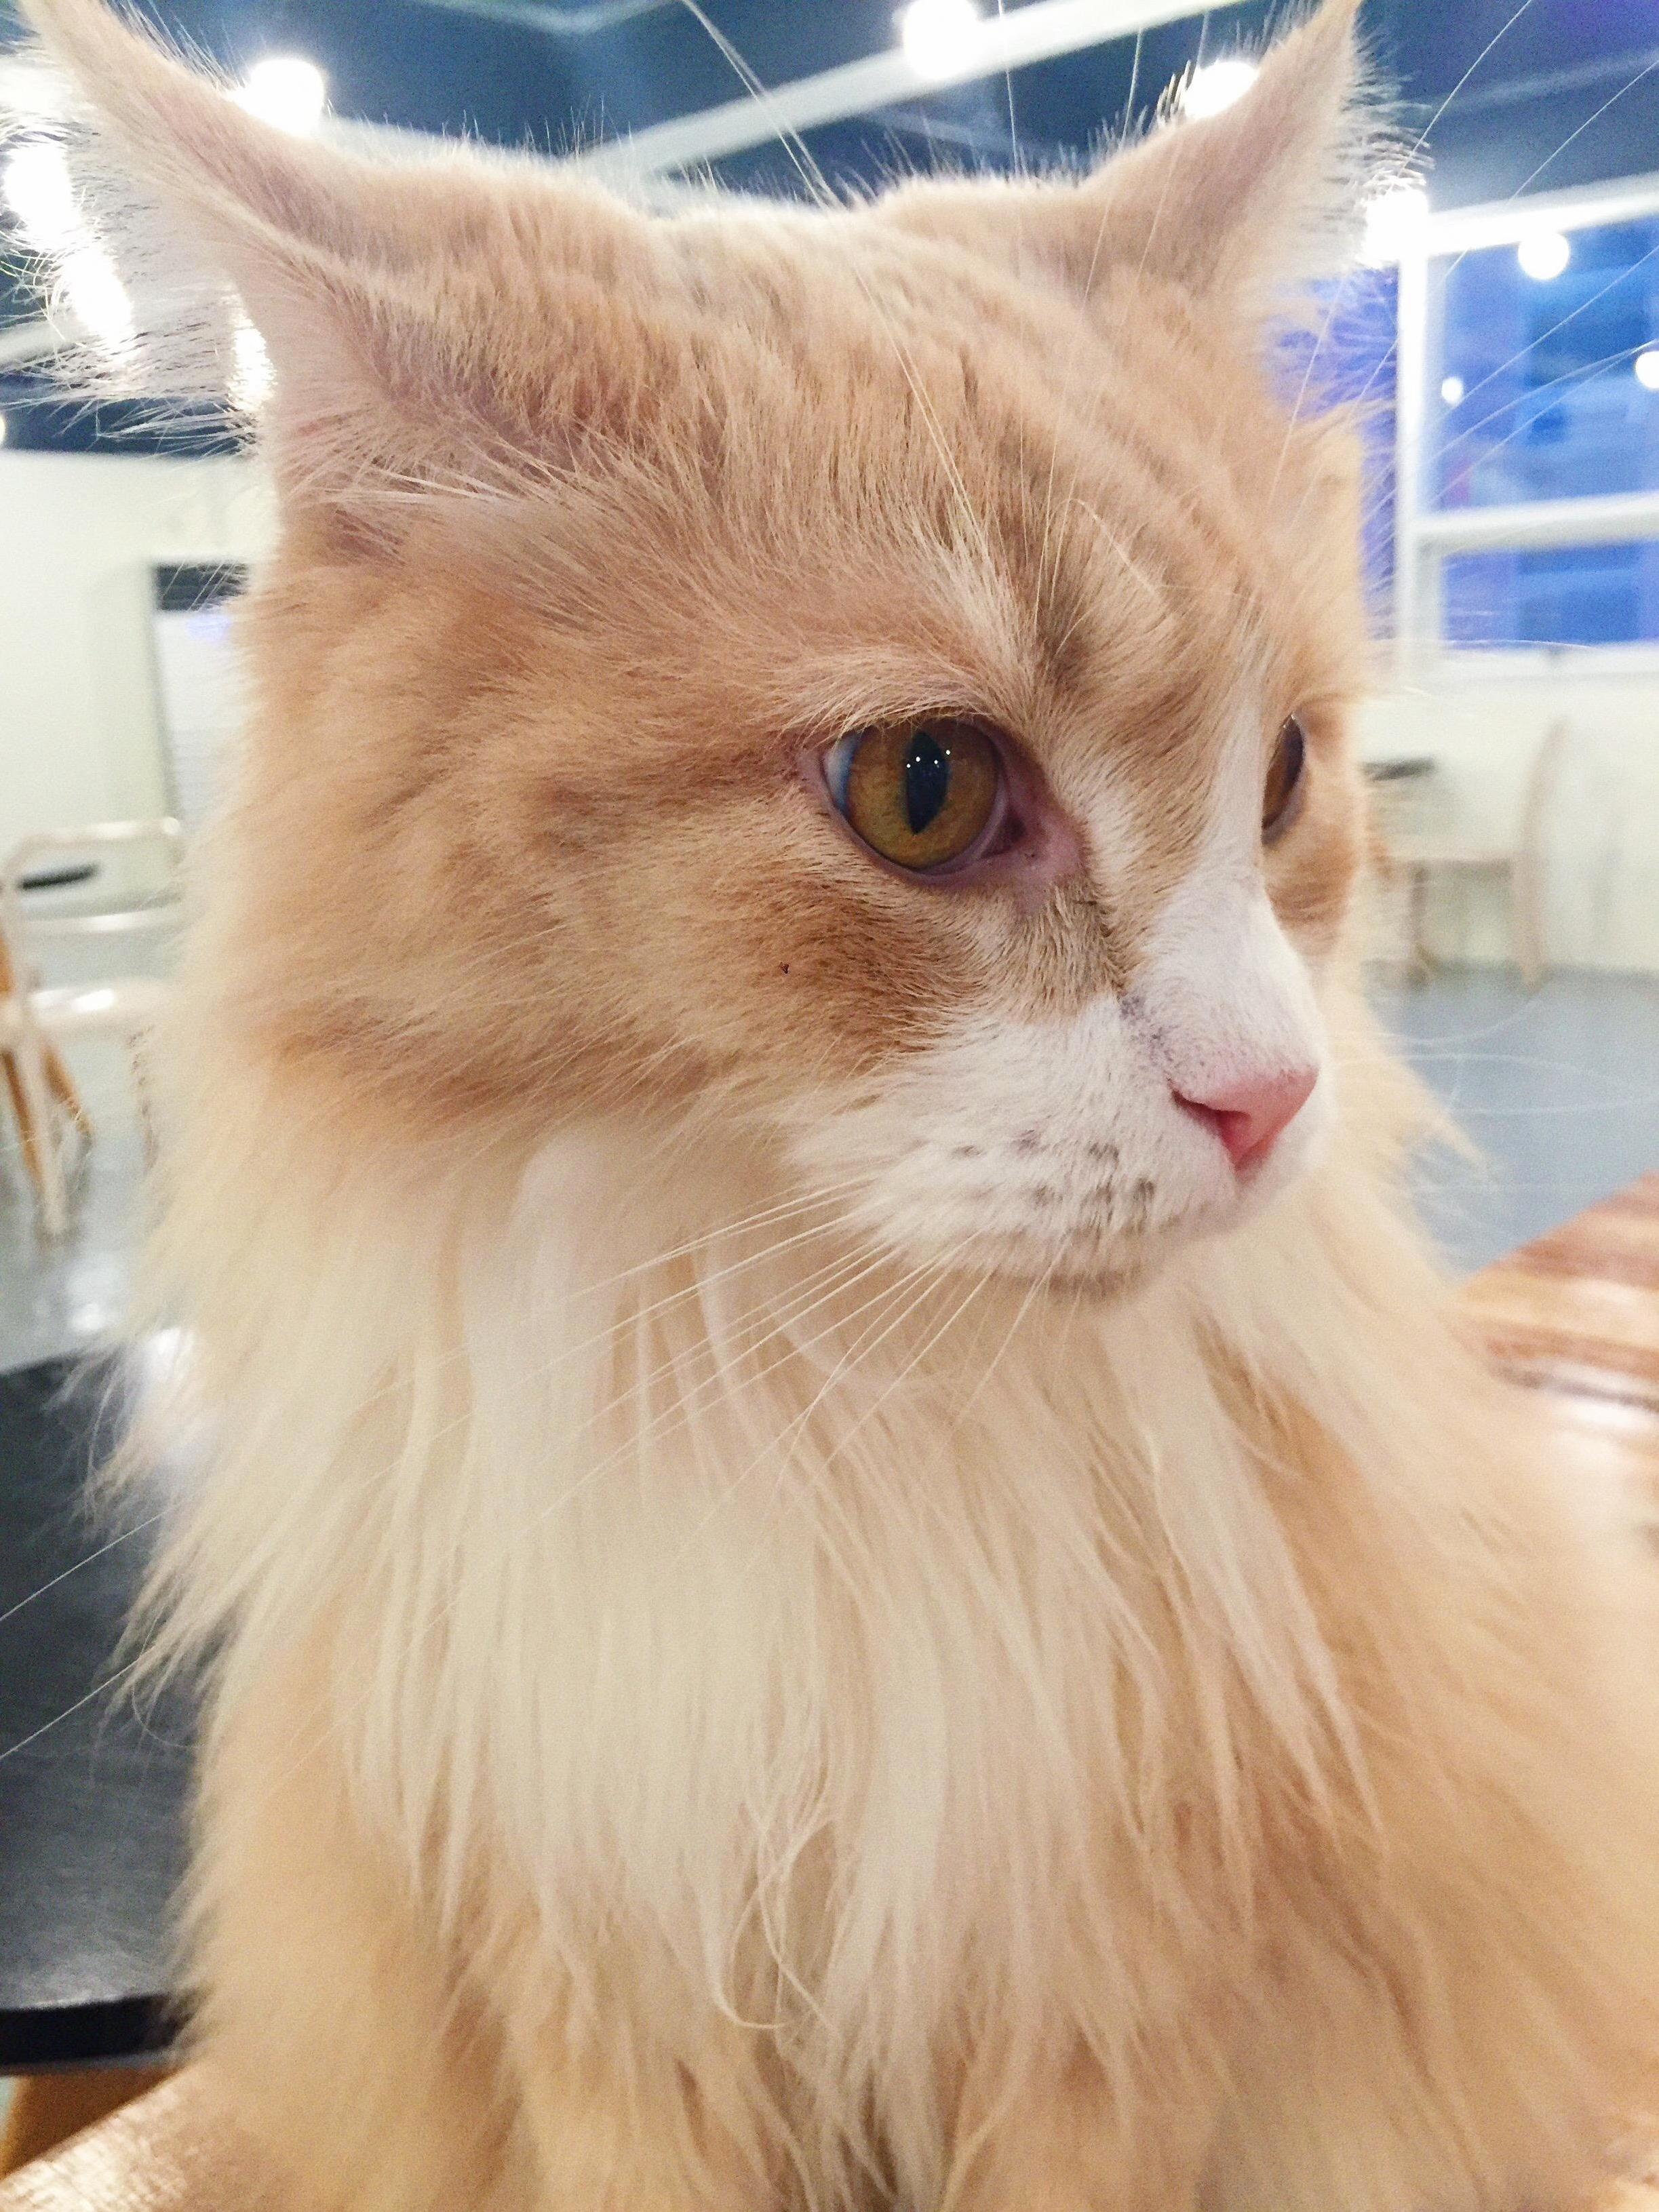 Went to a cat cafe and saw this gorgeous cat